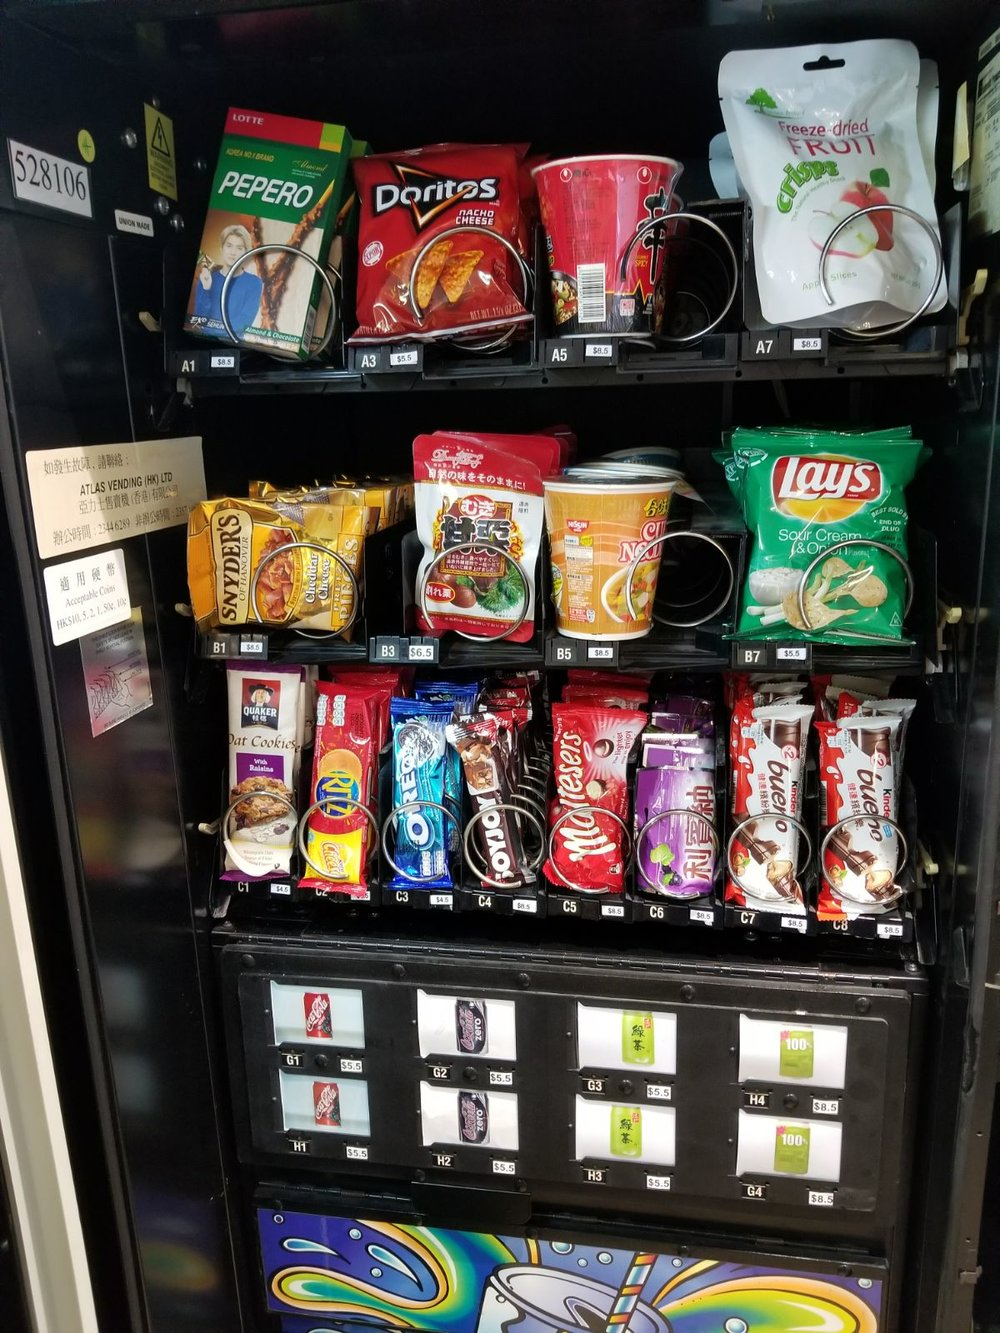 Freshup, vending machine hk, interactive, food, beverage, smart retail, convenient, vending services, professional, corporations, Deloitte, we are trusted